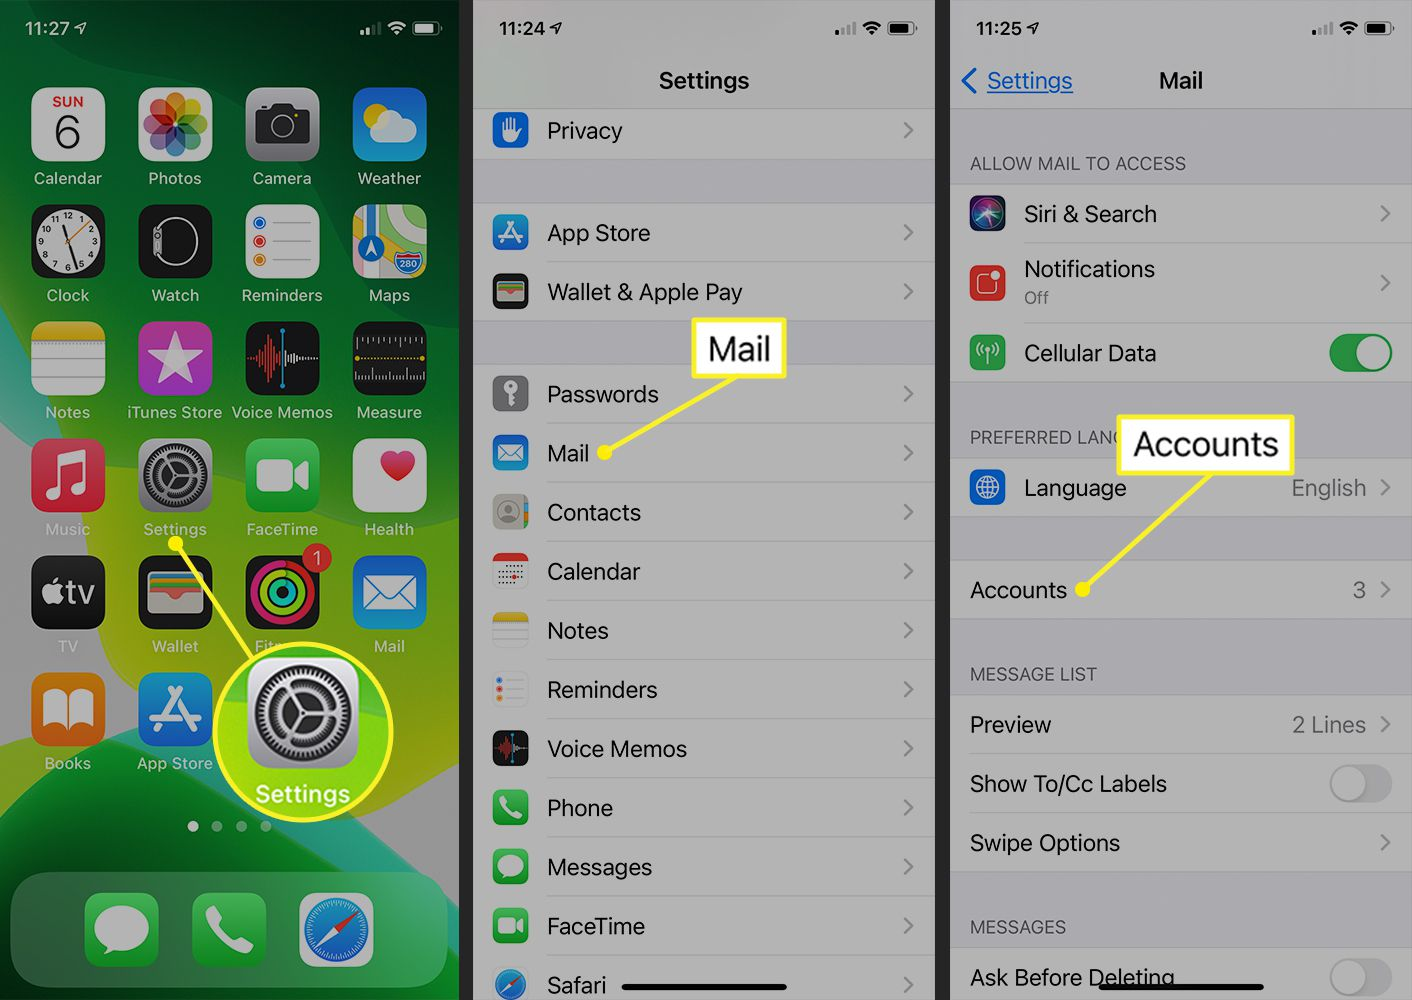 iPhone Mail settings showing Accounts